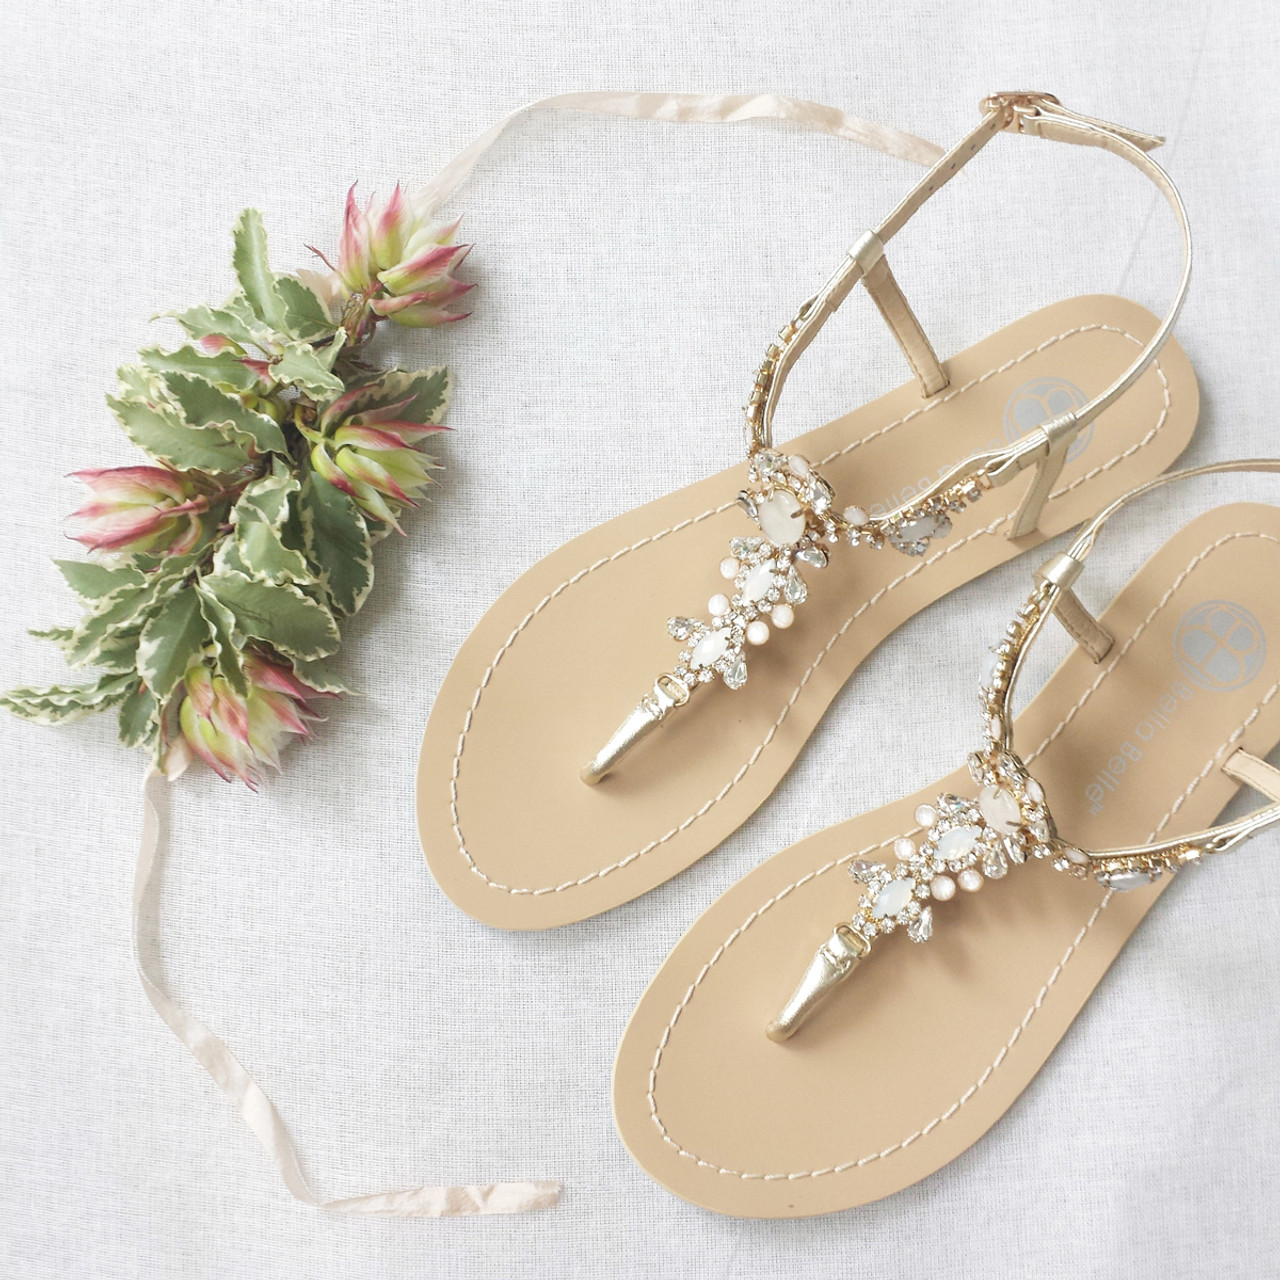 60043096a0841 Thong sandal Vintage-inspired rows of crystal jewels and white onyx-like  stones Jewels